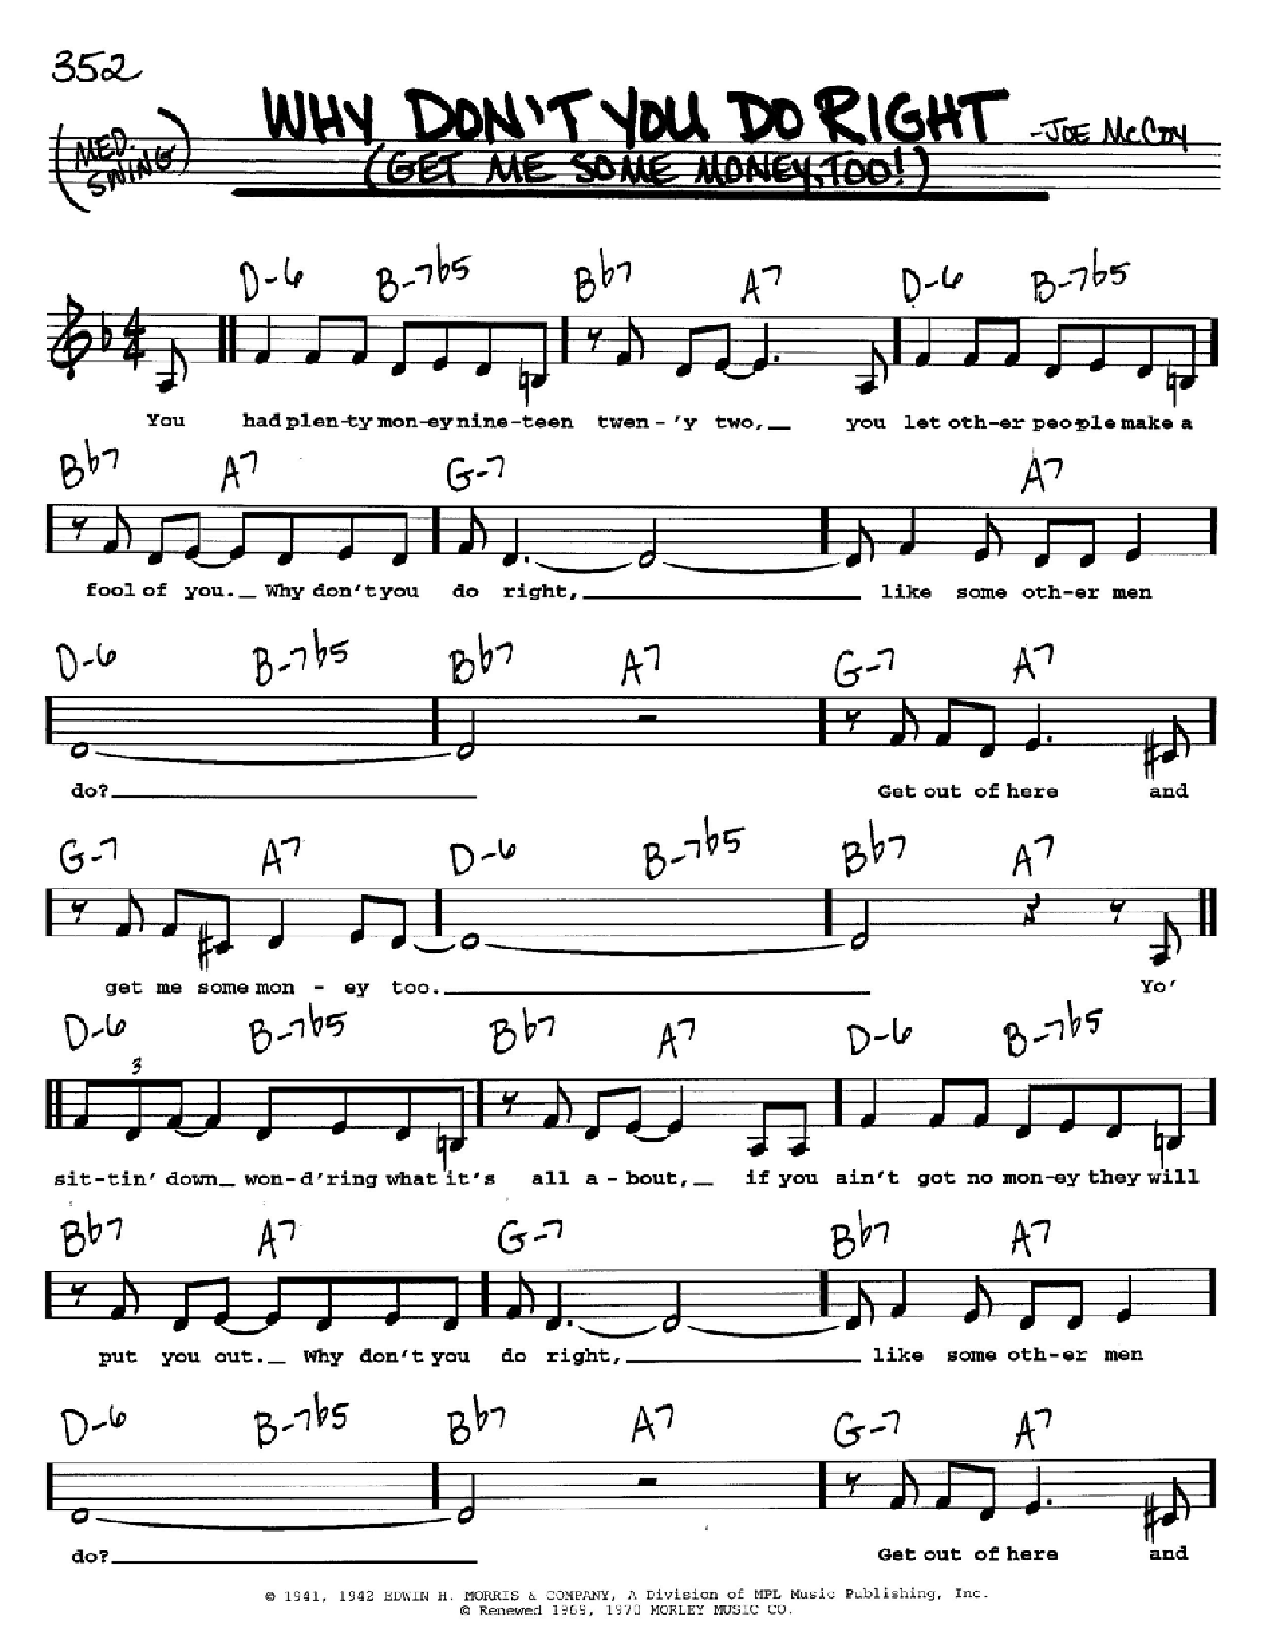 Why Don't You Do Right (Get Me Some Money, Too!) Sheet Music